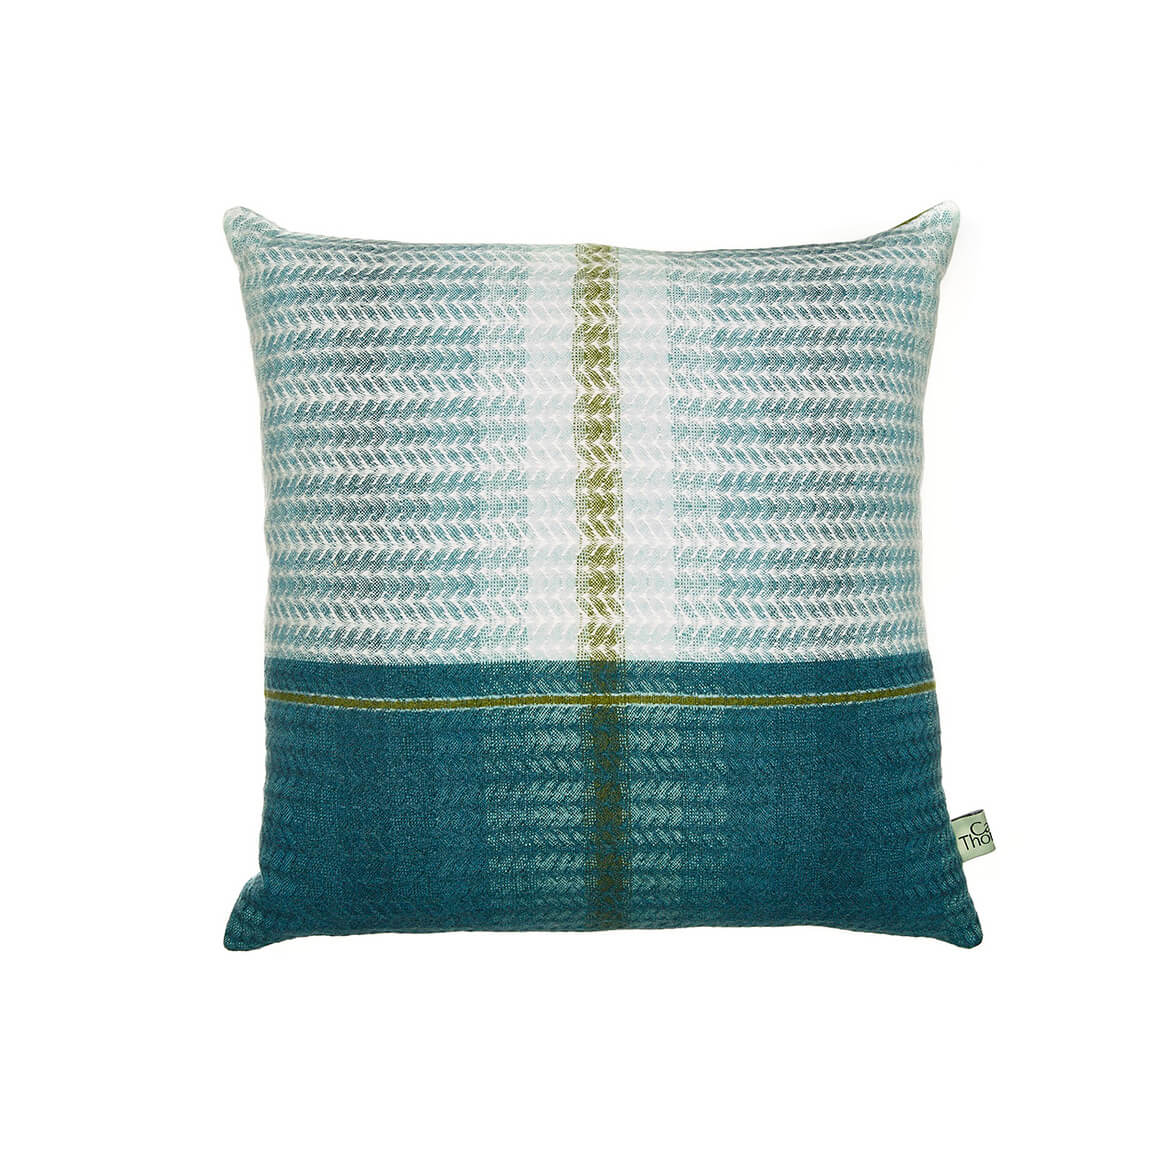 Designer cushion from Camilla Thomas photographed from above and on a white background